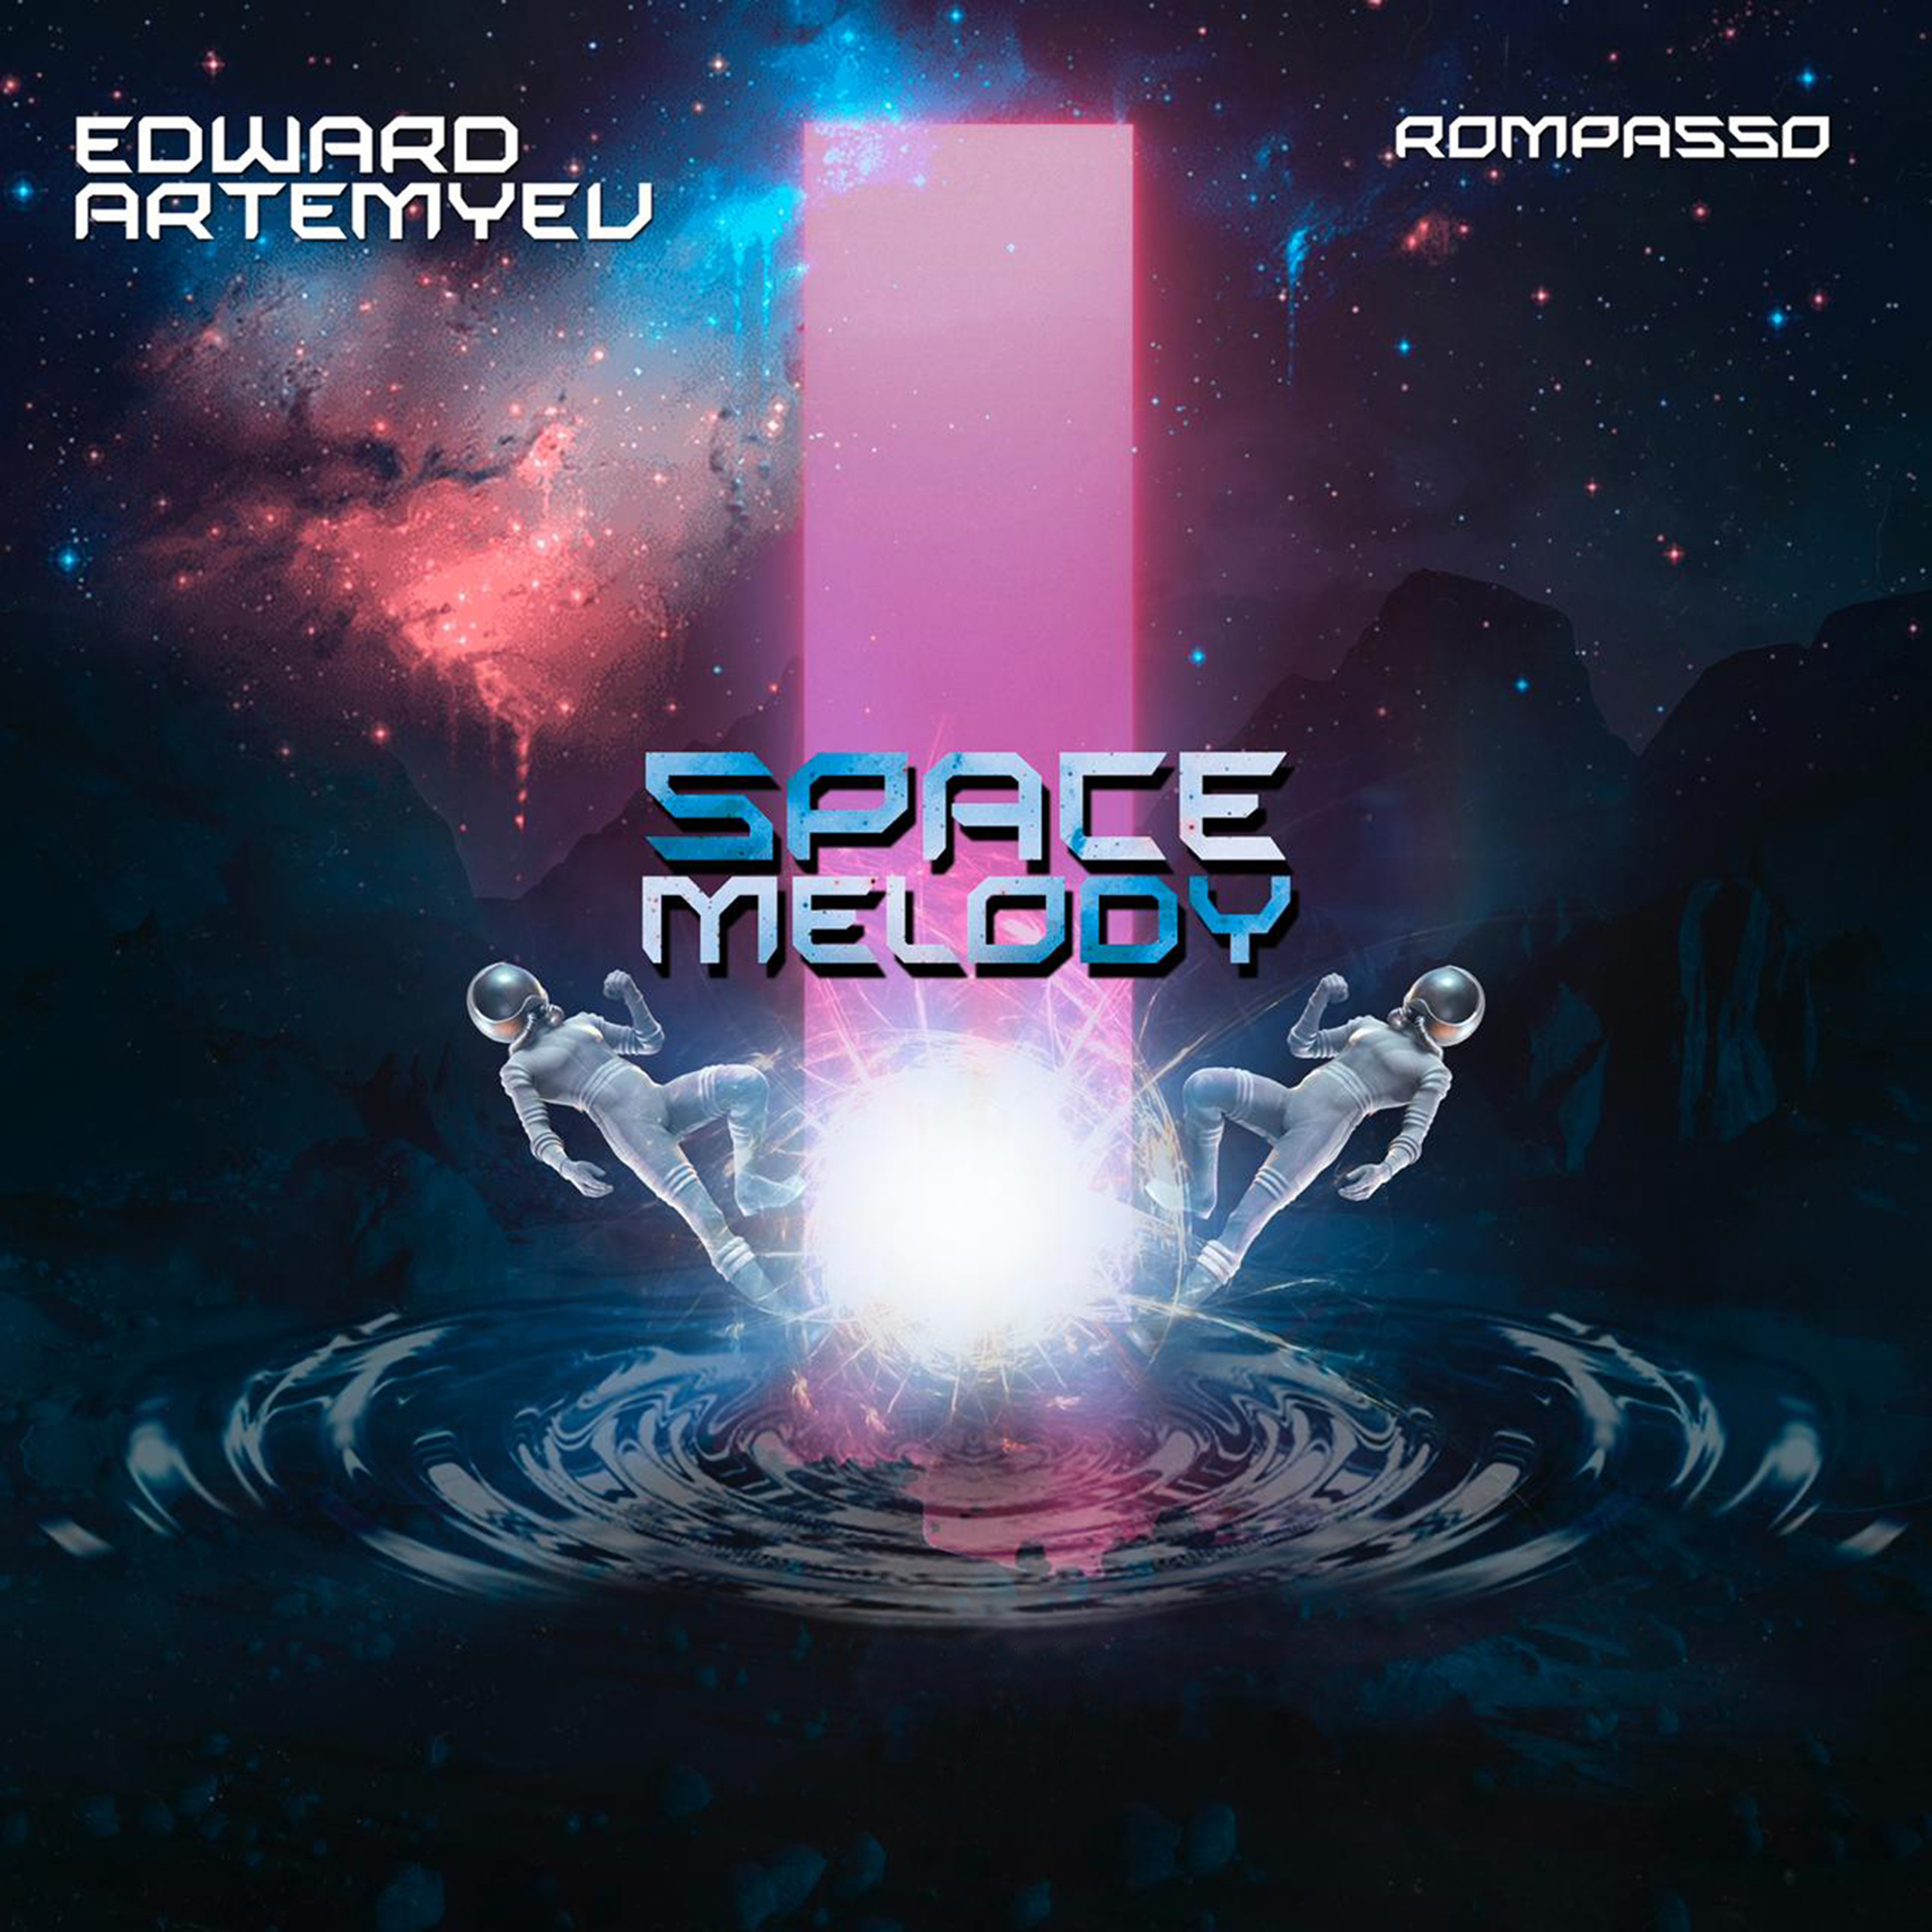 Edward Artemyev & Rompasso - Space Melody - Cover Art